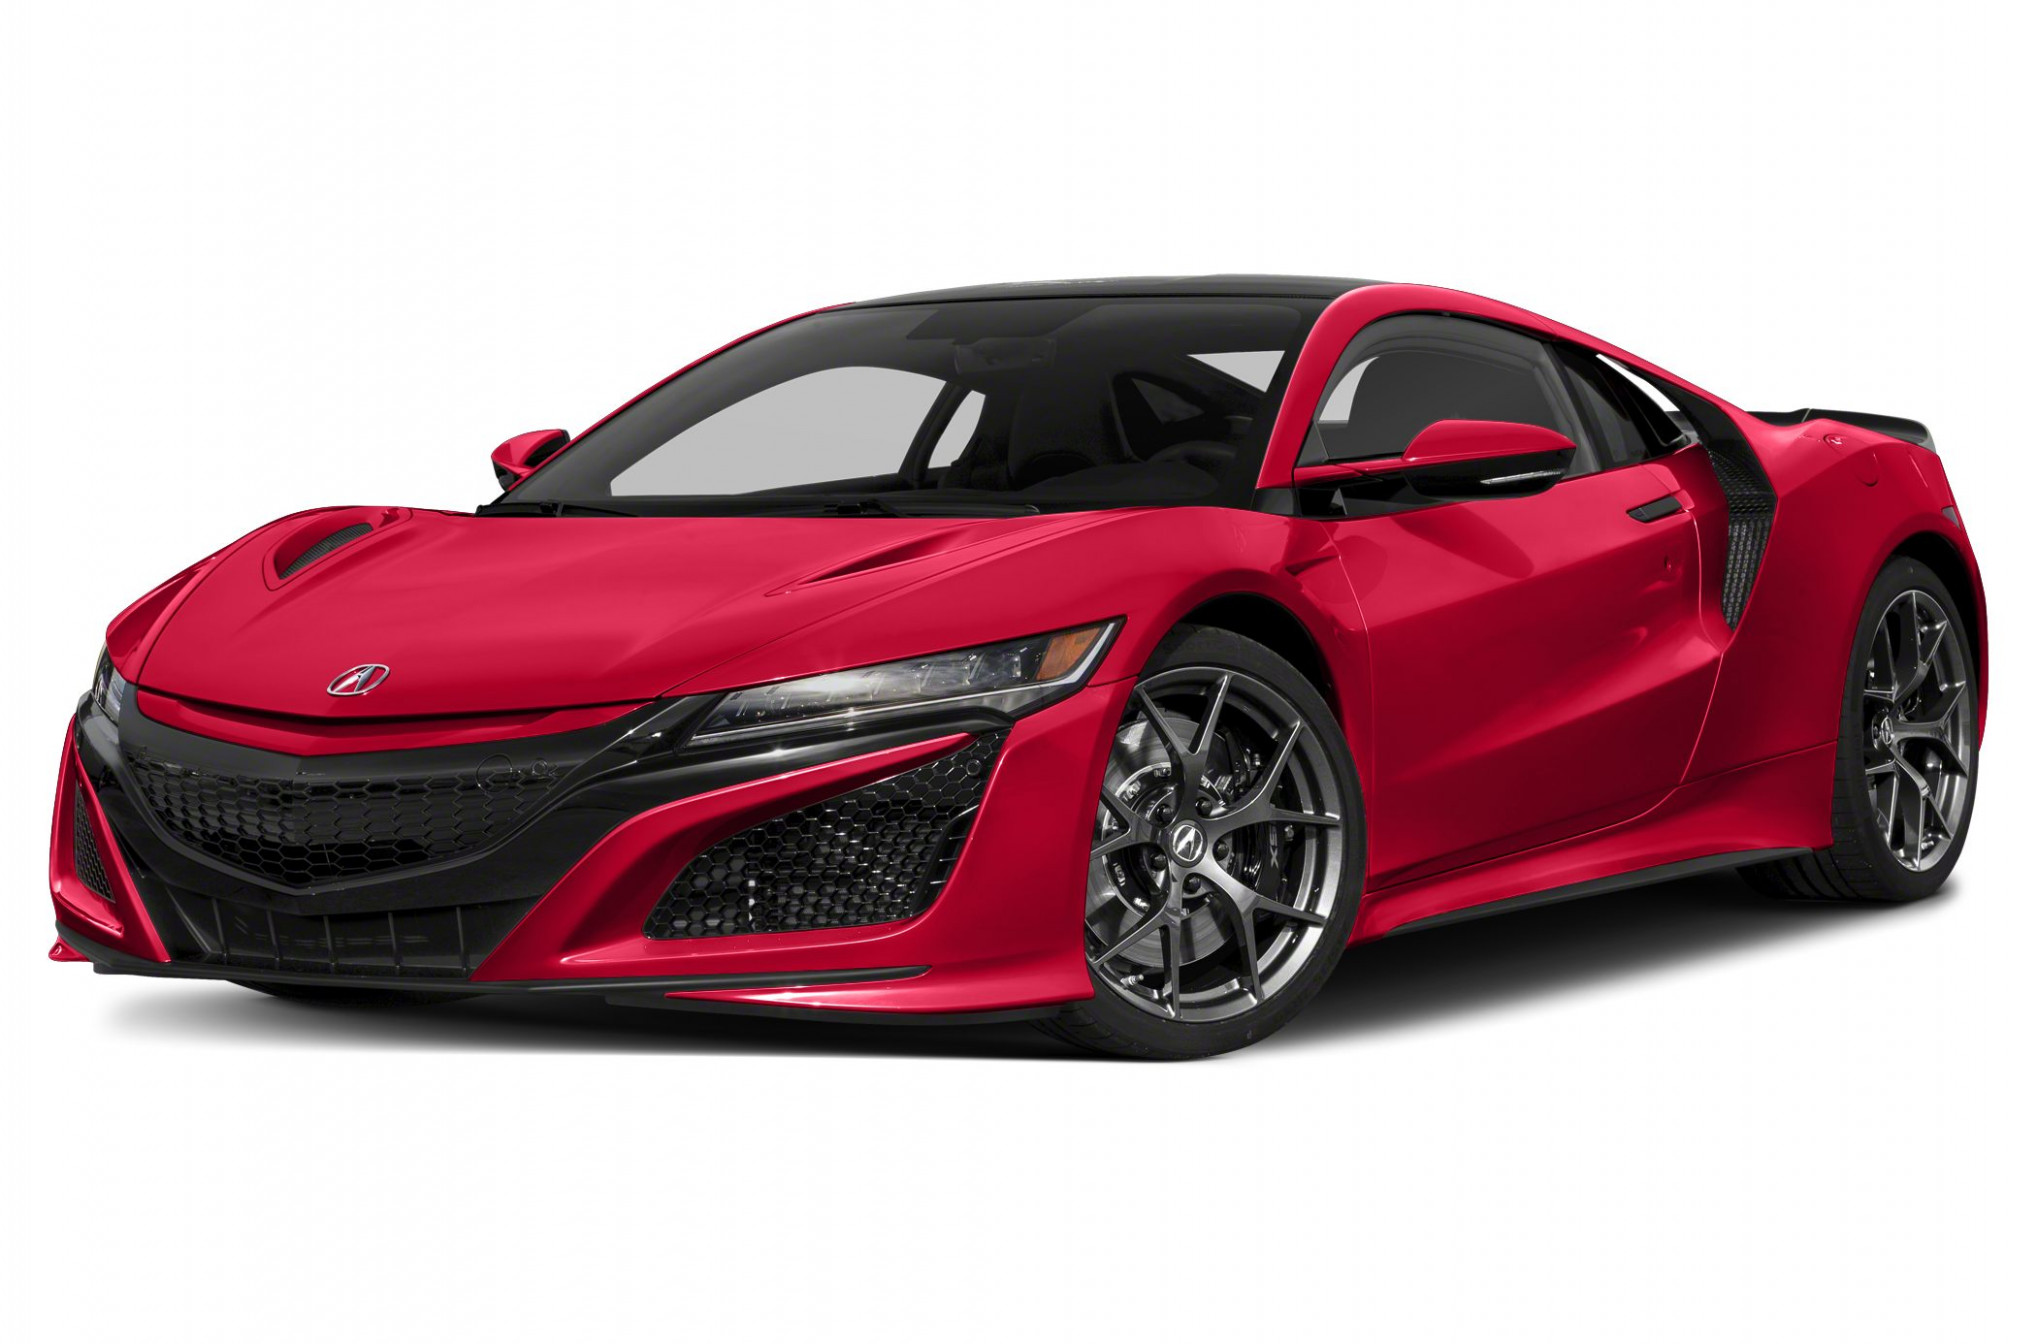 7 Acura NSX Base 7dr All-wheel Drive Coupe Specs and Prices - acura coupe 2020